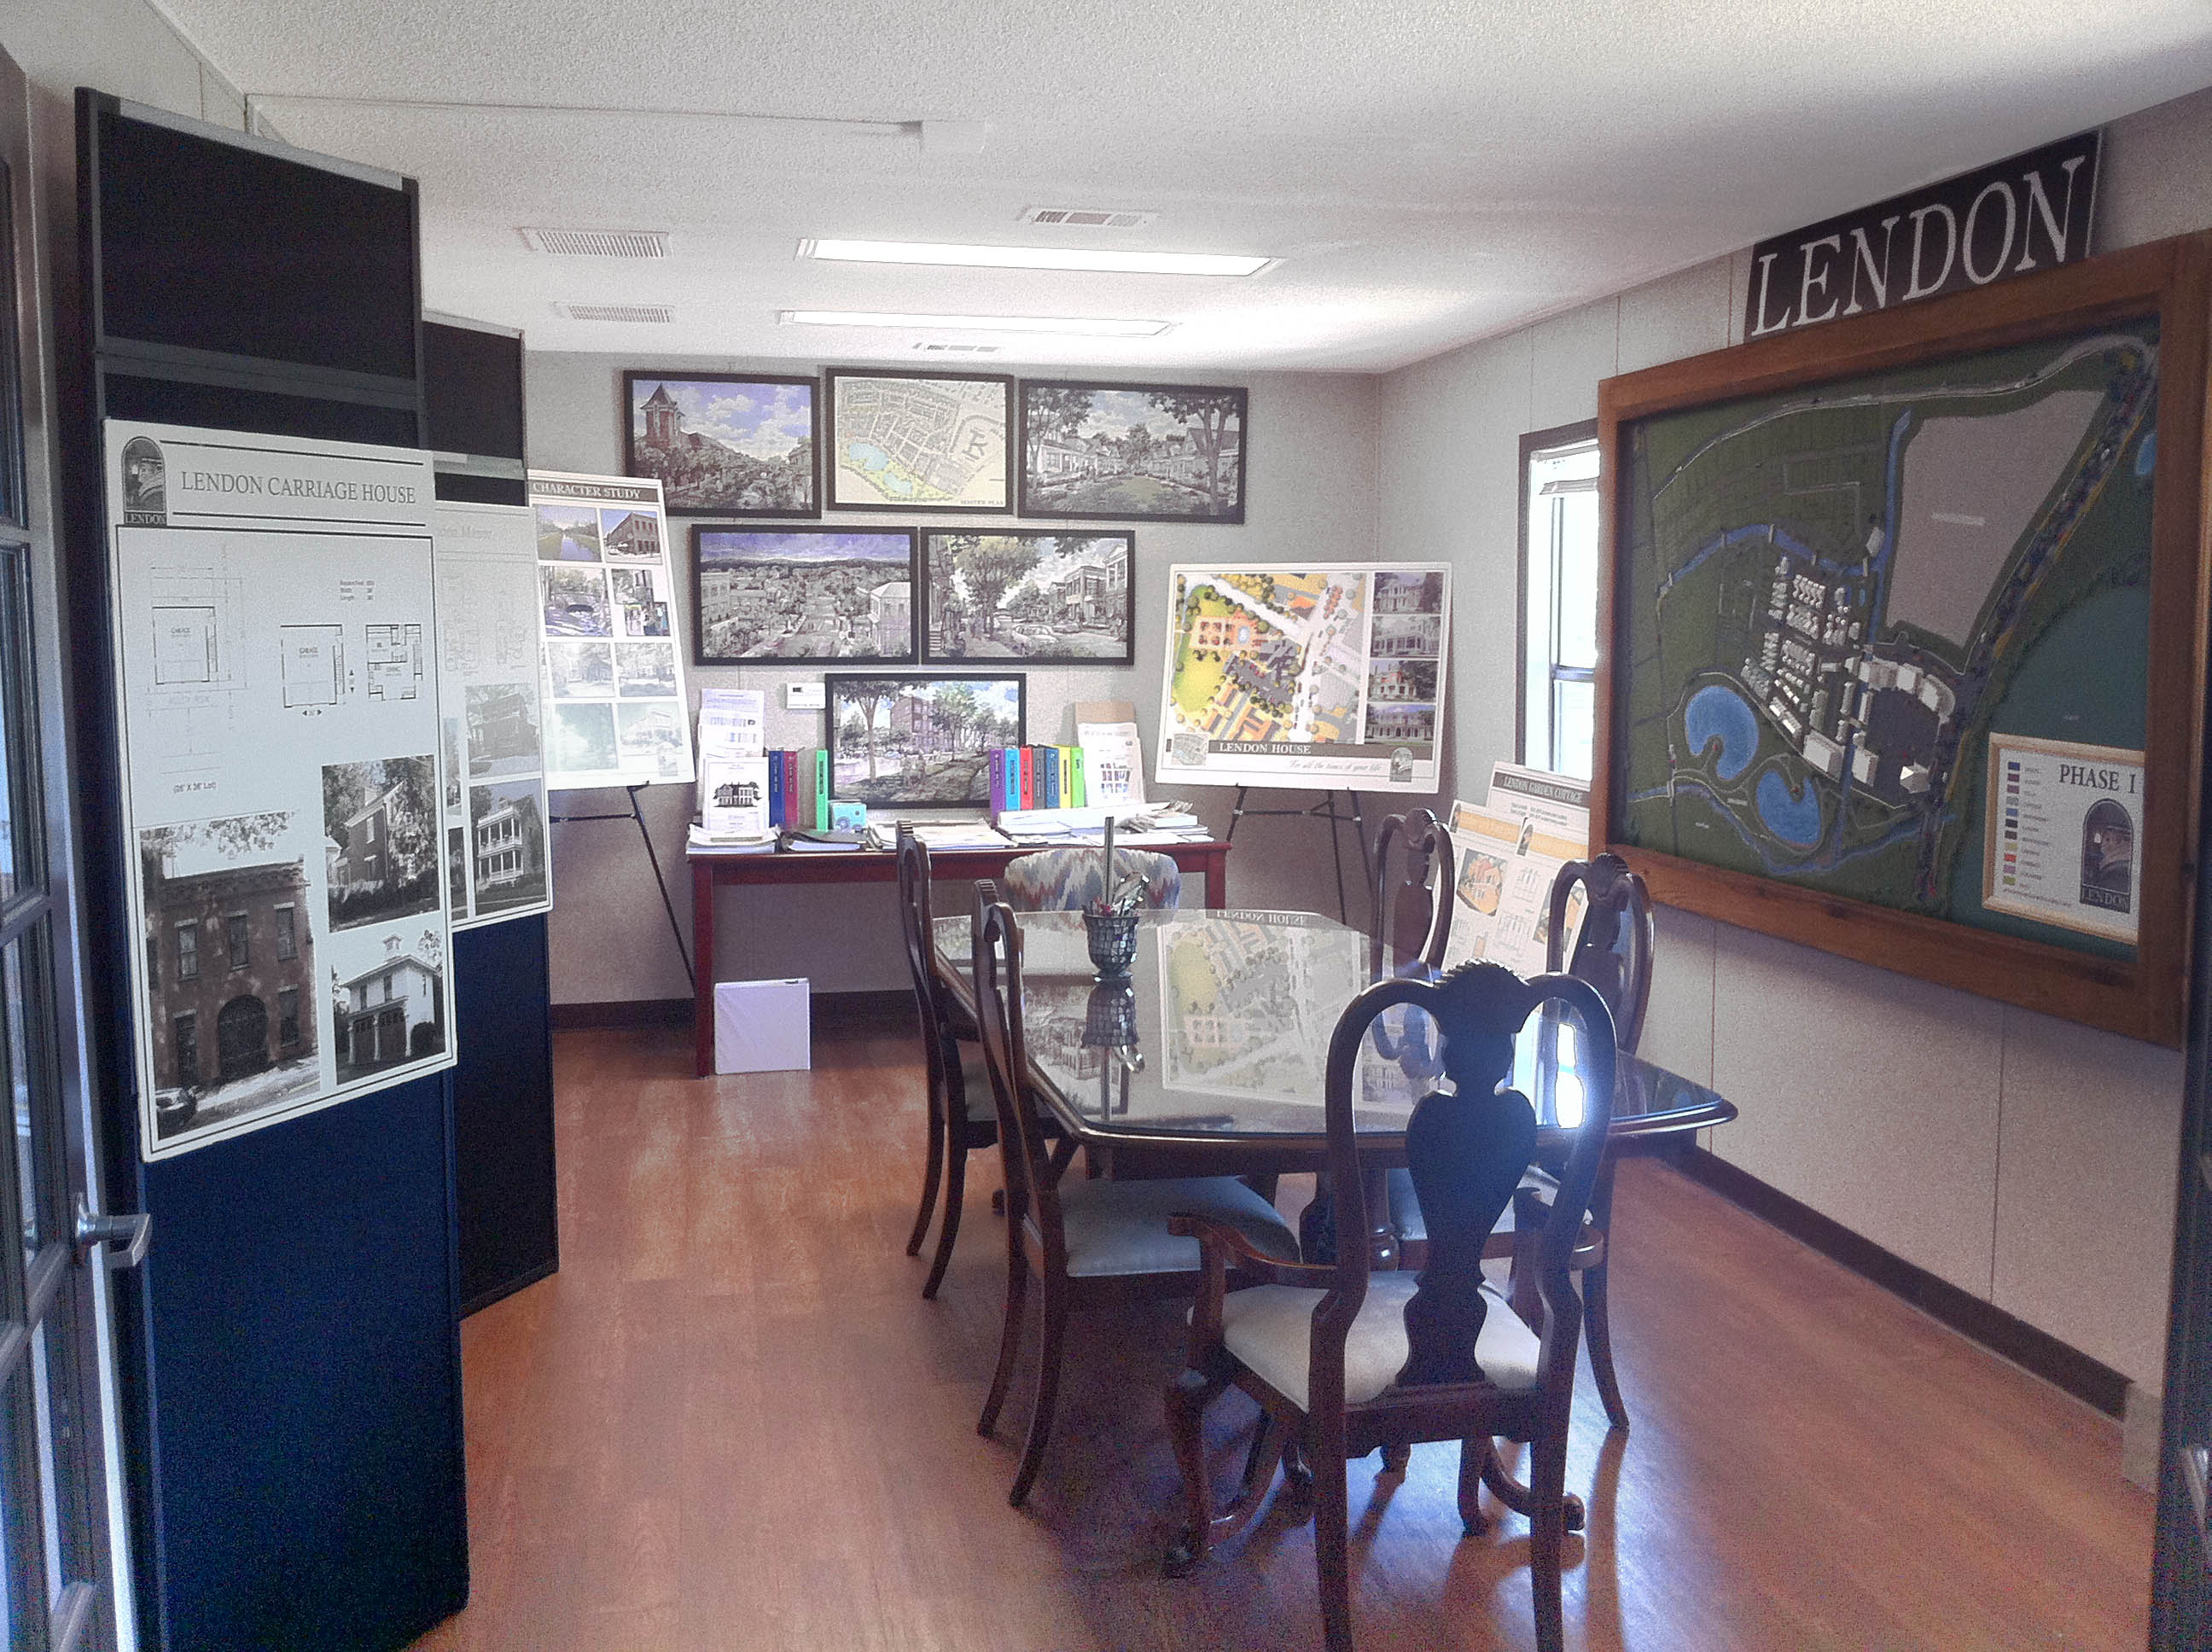 Come in and take a look at our plans for the LENDON Community